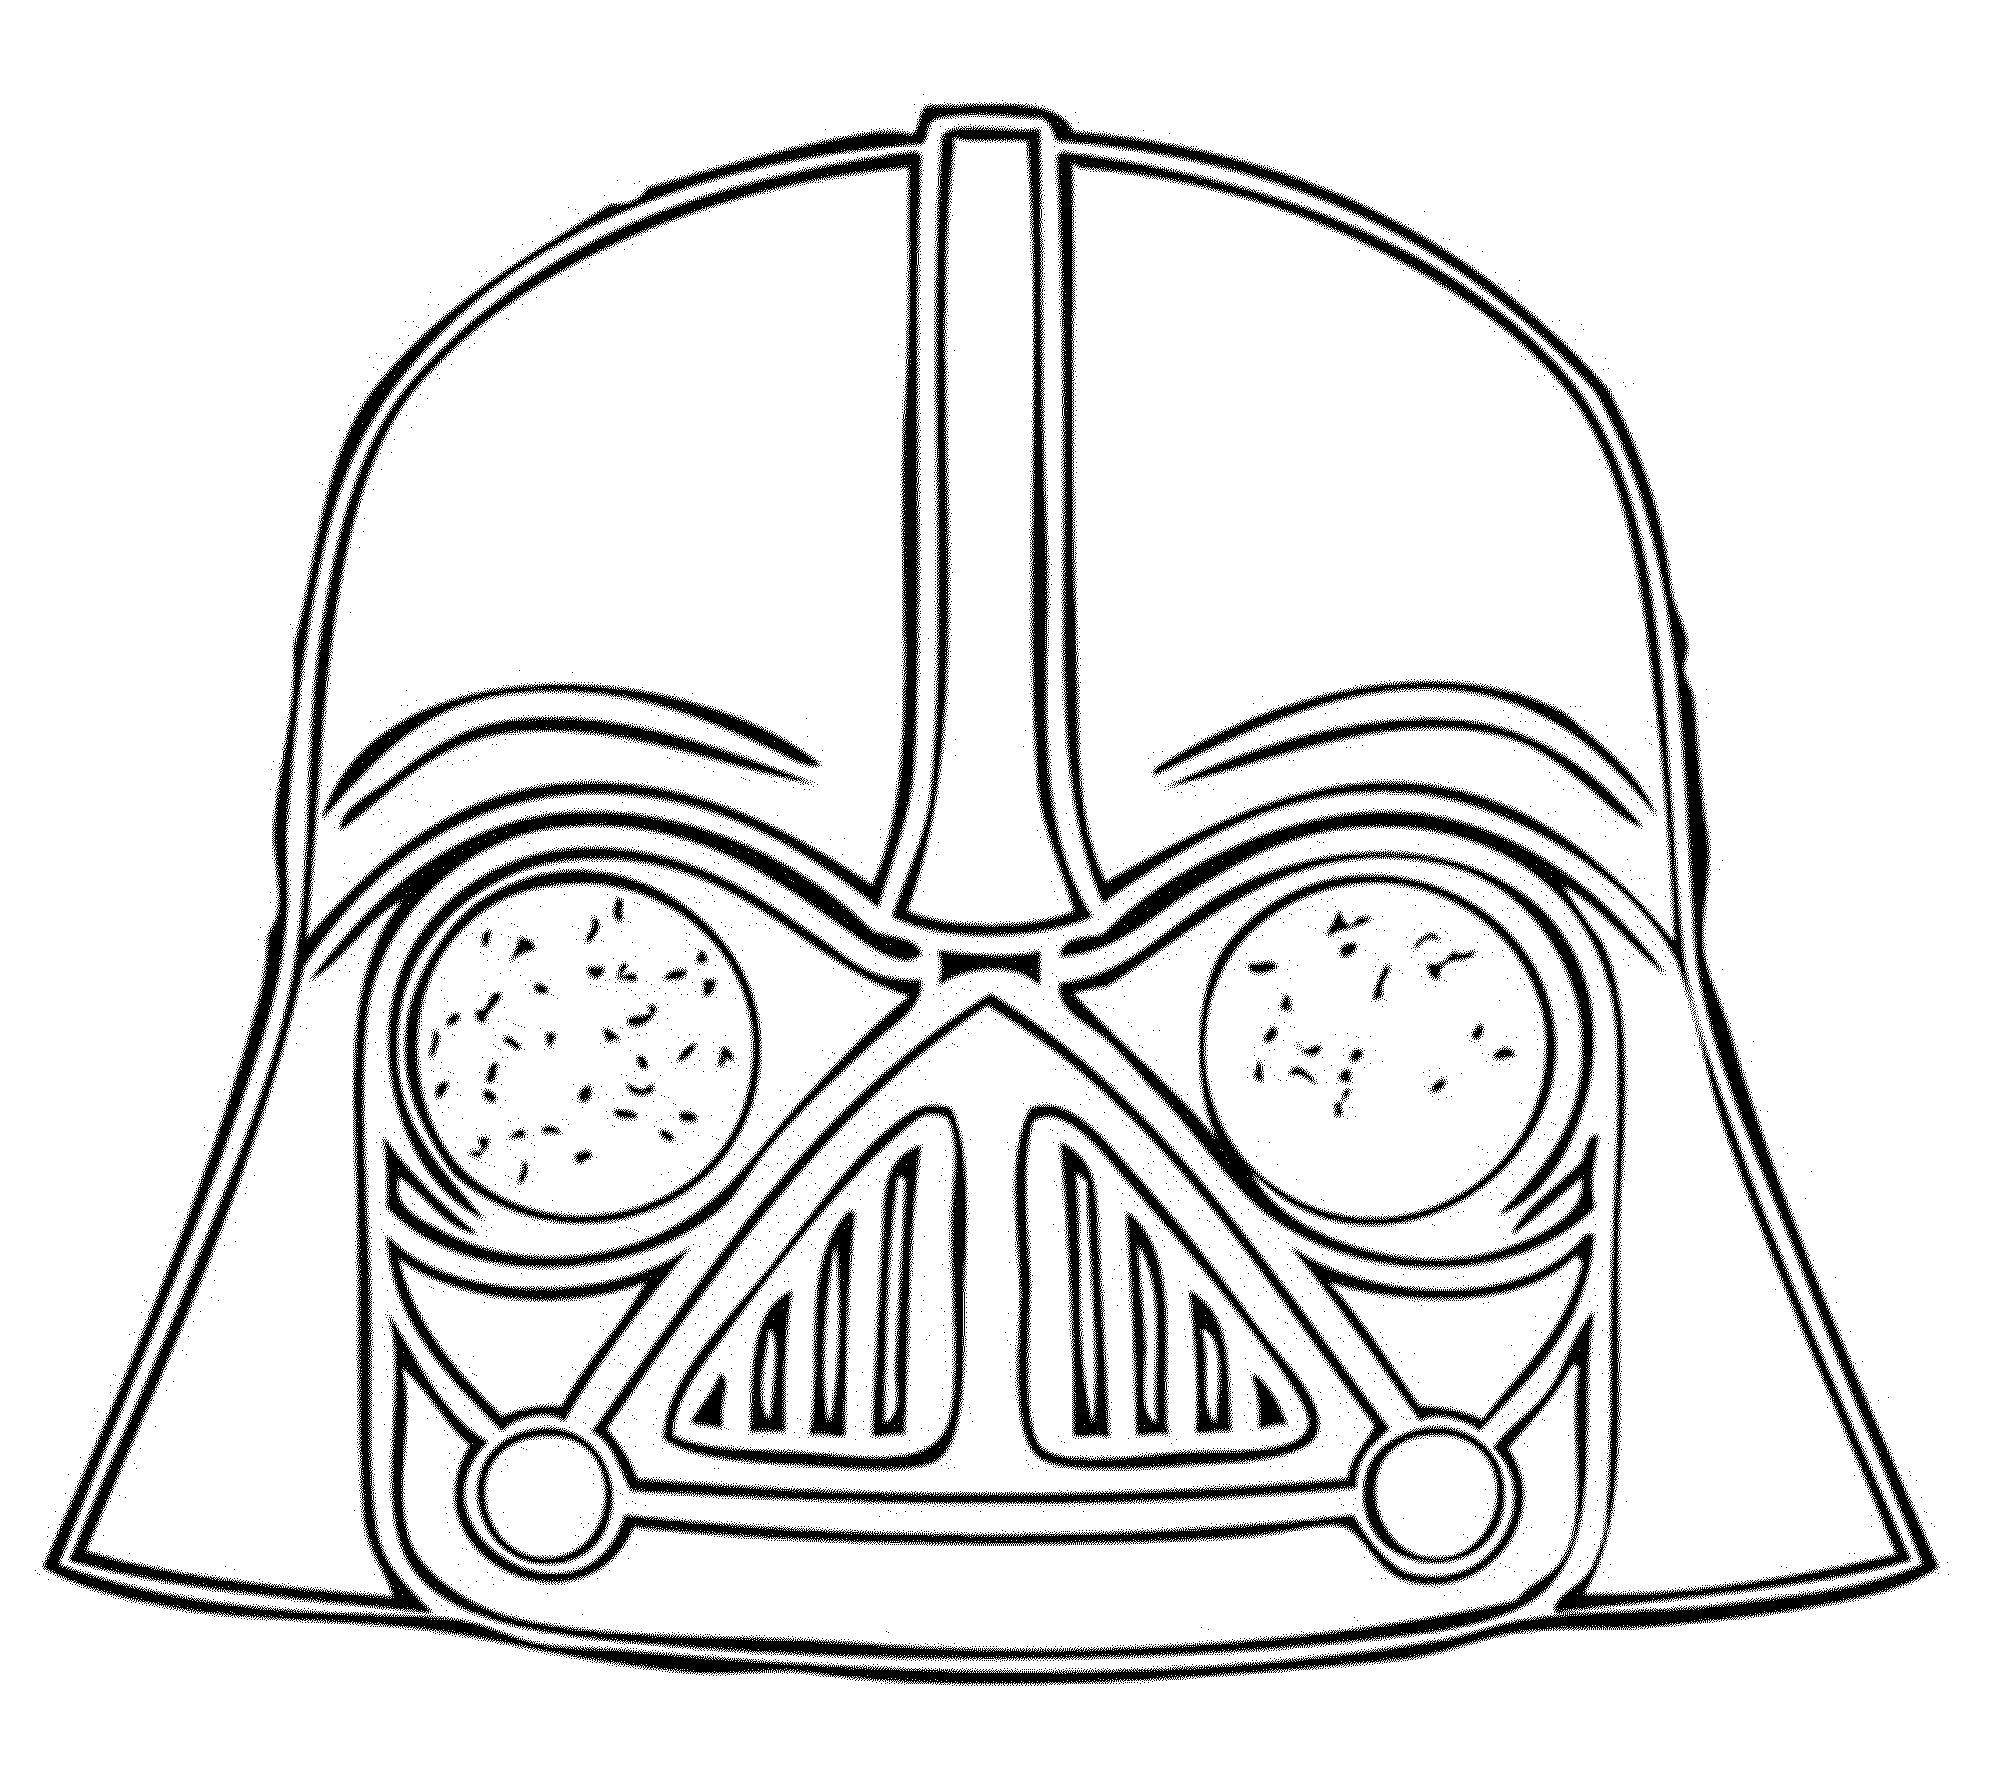 shop related products - Angry Birds Star Wars Coloring Pages